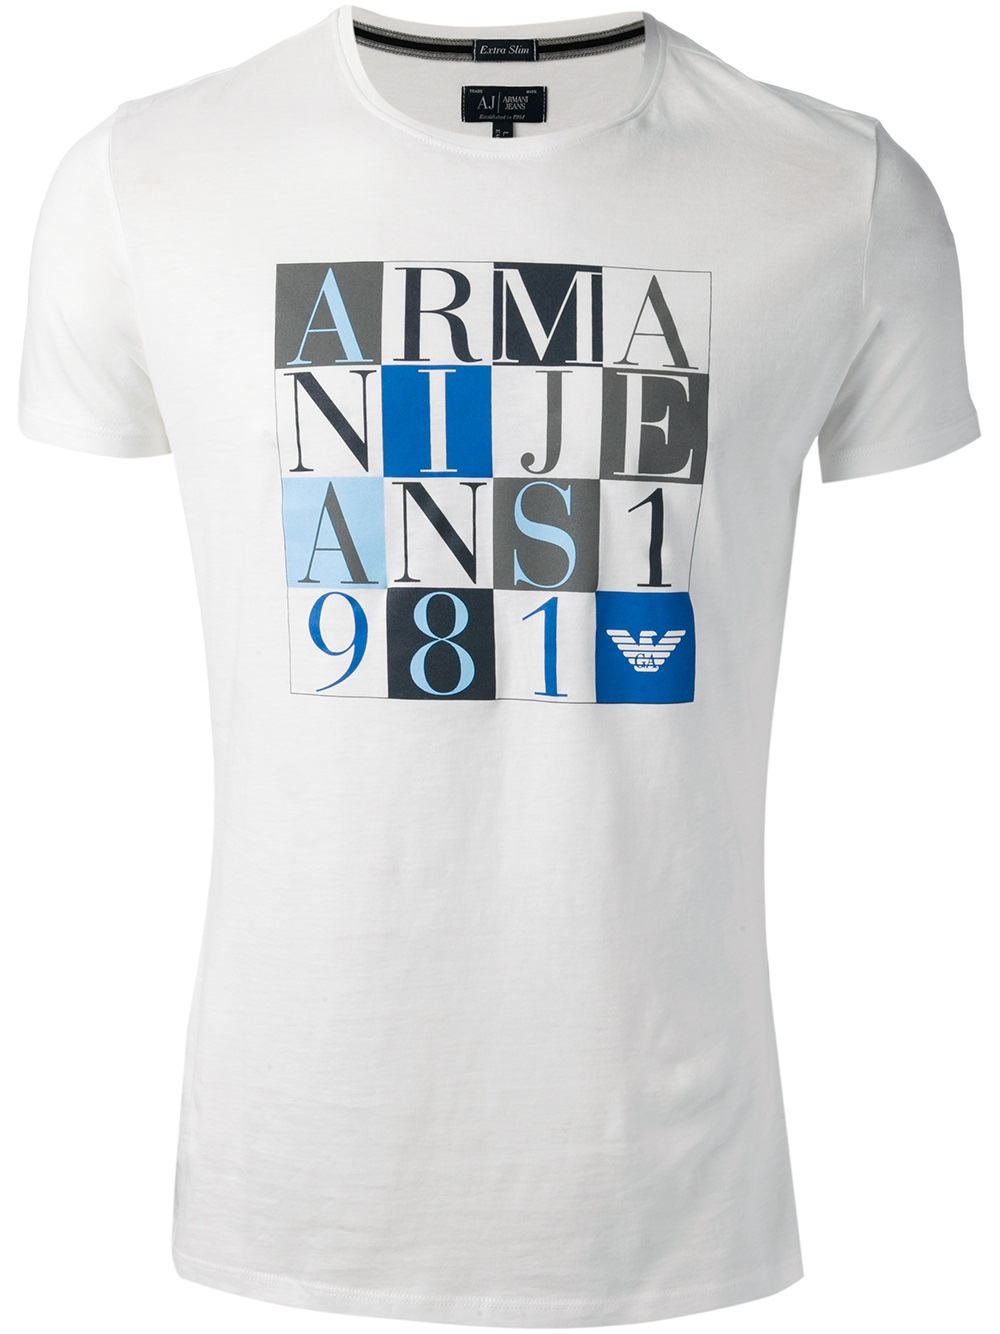 ff04ed1ce263 Lyst - Armani Jeans Logo T-Shirt in White for Men